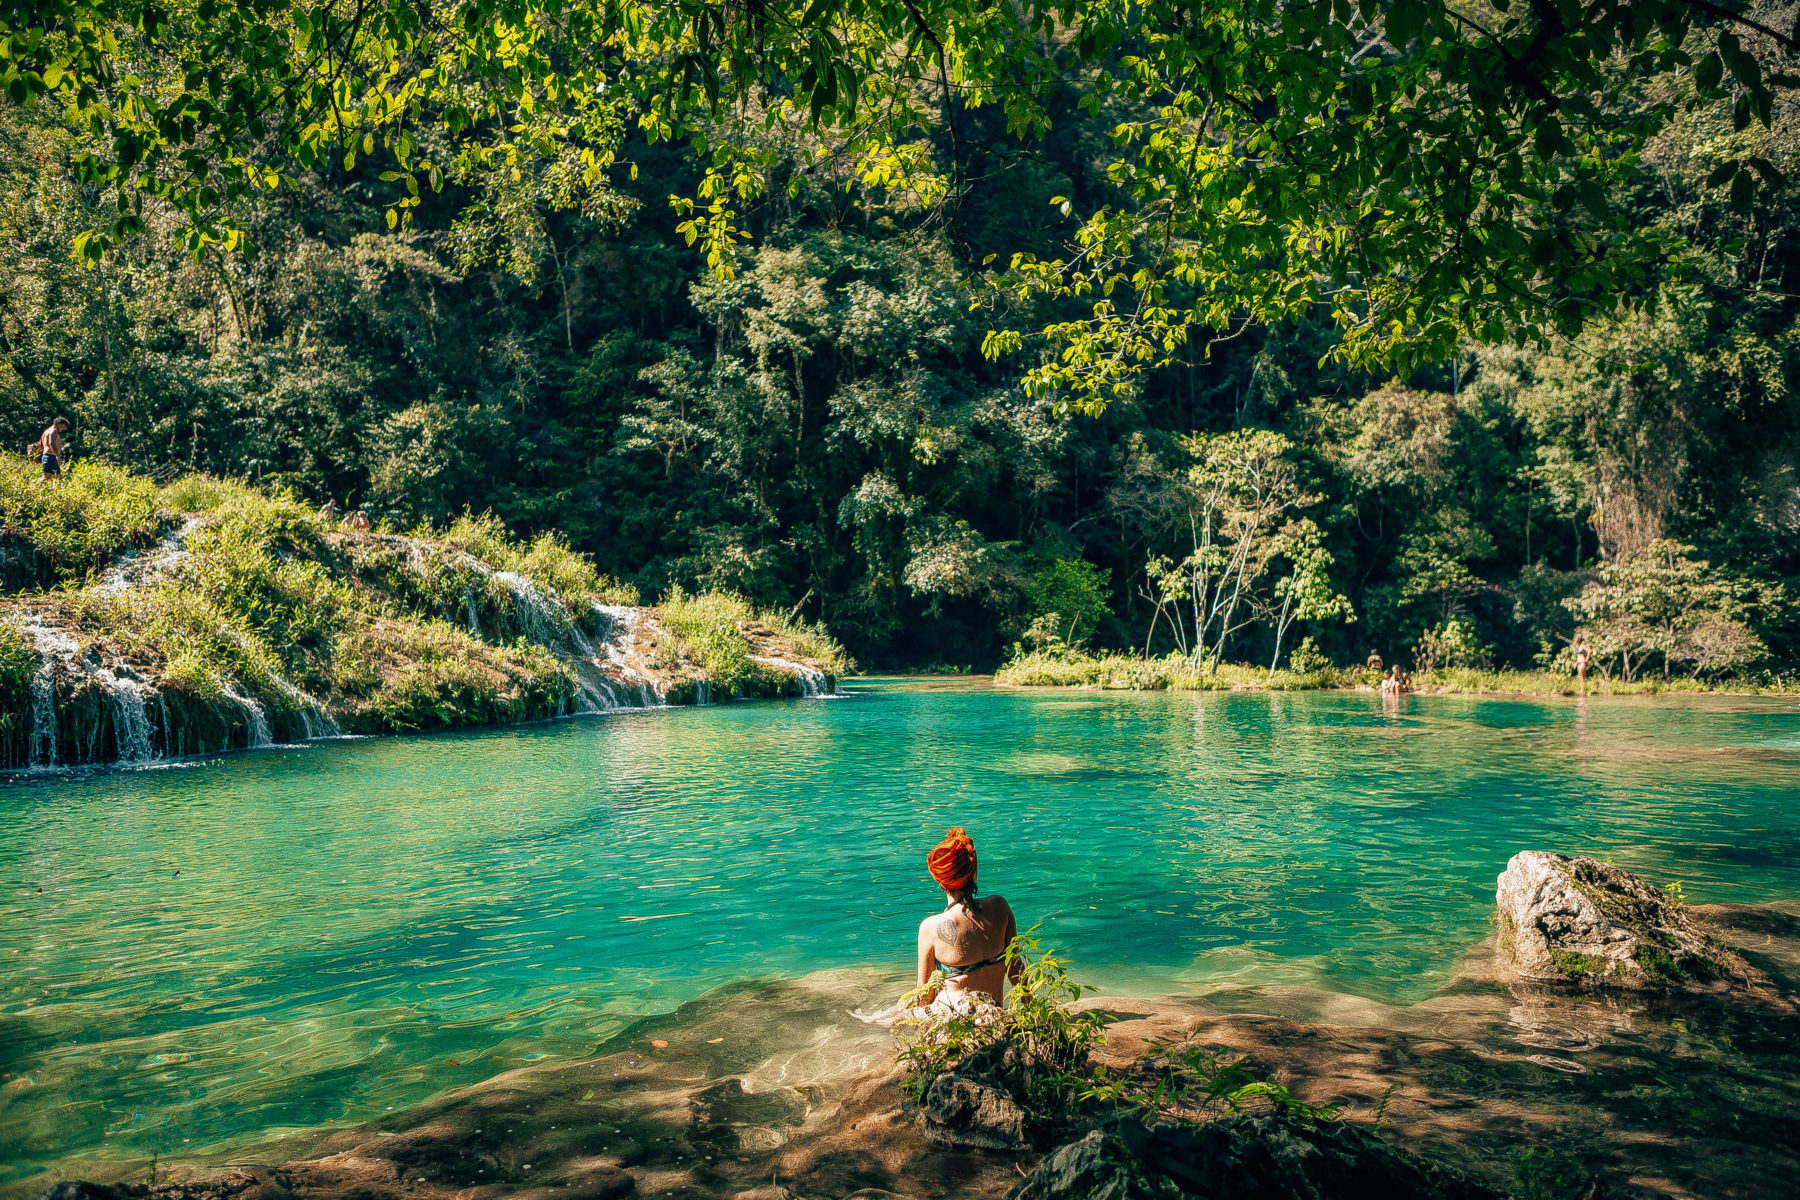 guatemala semuc champey turquoise pools jungle green humid swim adventure far away hidden paradise el retiro lodge in the jungle cacao pure natural pools tropics